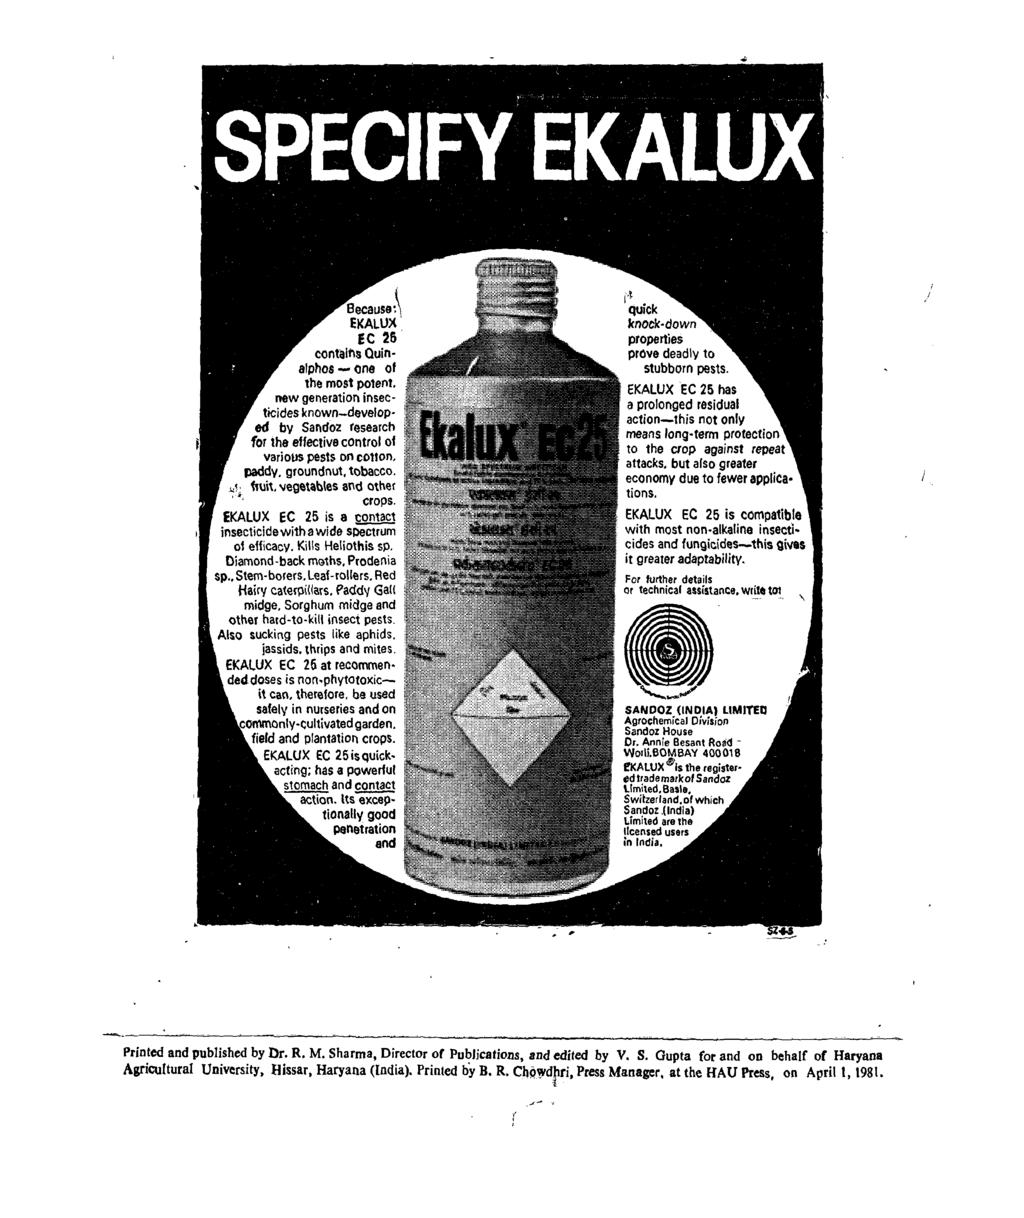 I,t quick knock down properties prove deadly to stubborn pests, EKALUX EC 25 has a prolonged residual action-this not only means long. term protection to the crop against repeat attacks.